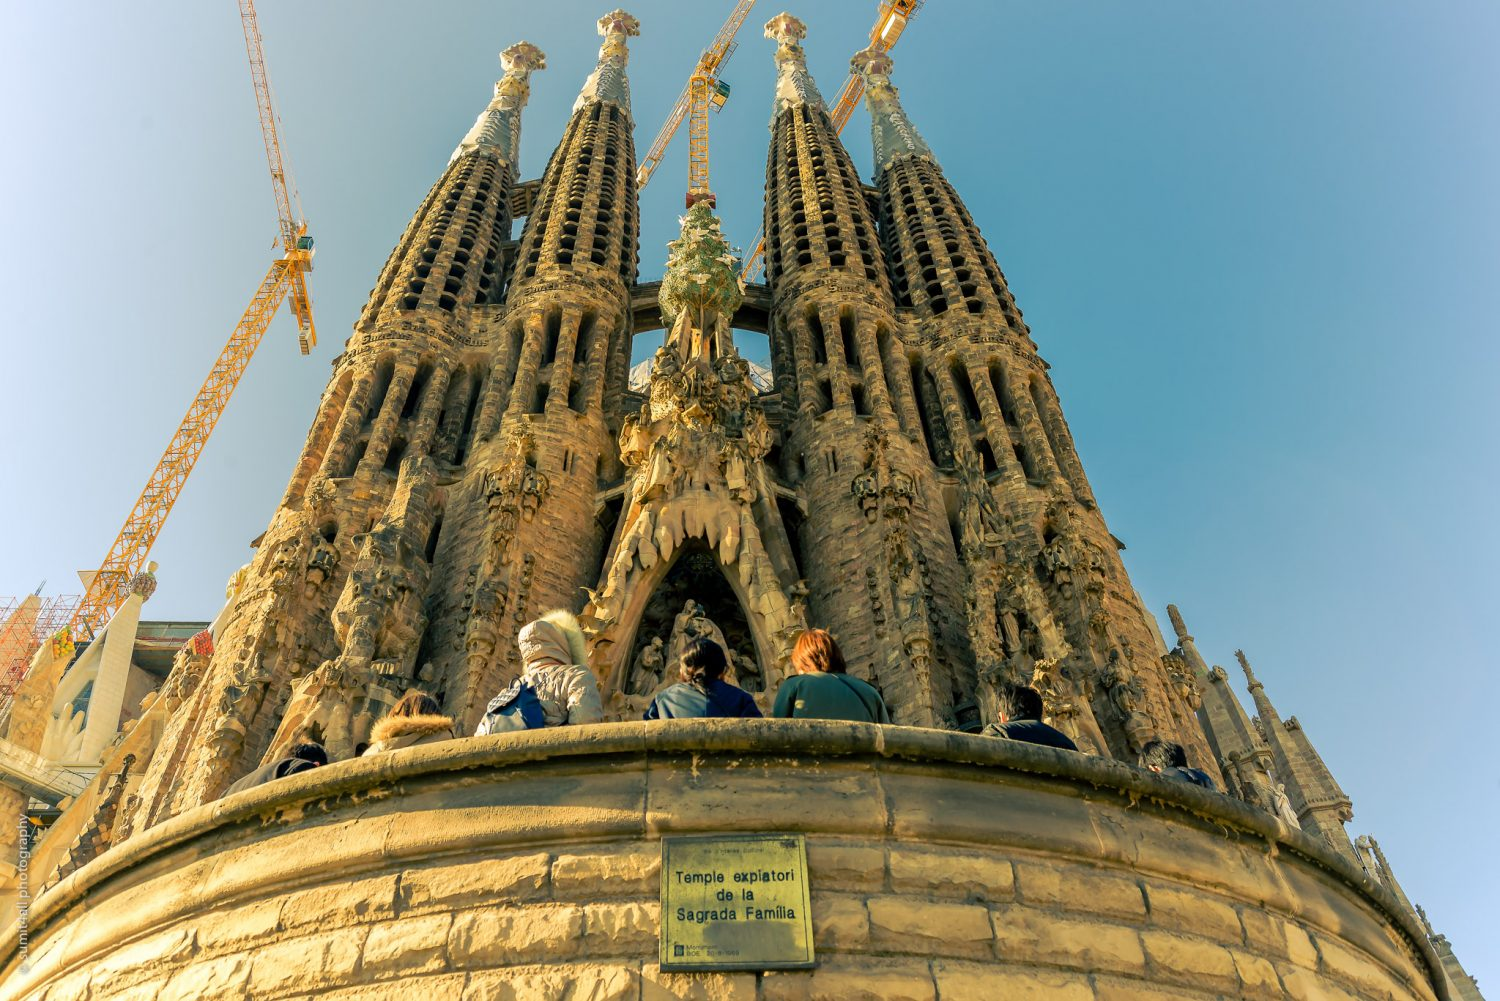 The Sagrada Familia is now one of the most visited tourist spots in Europe